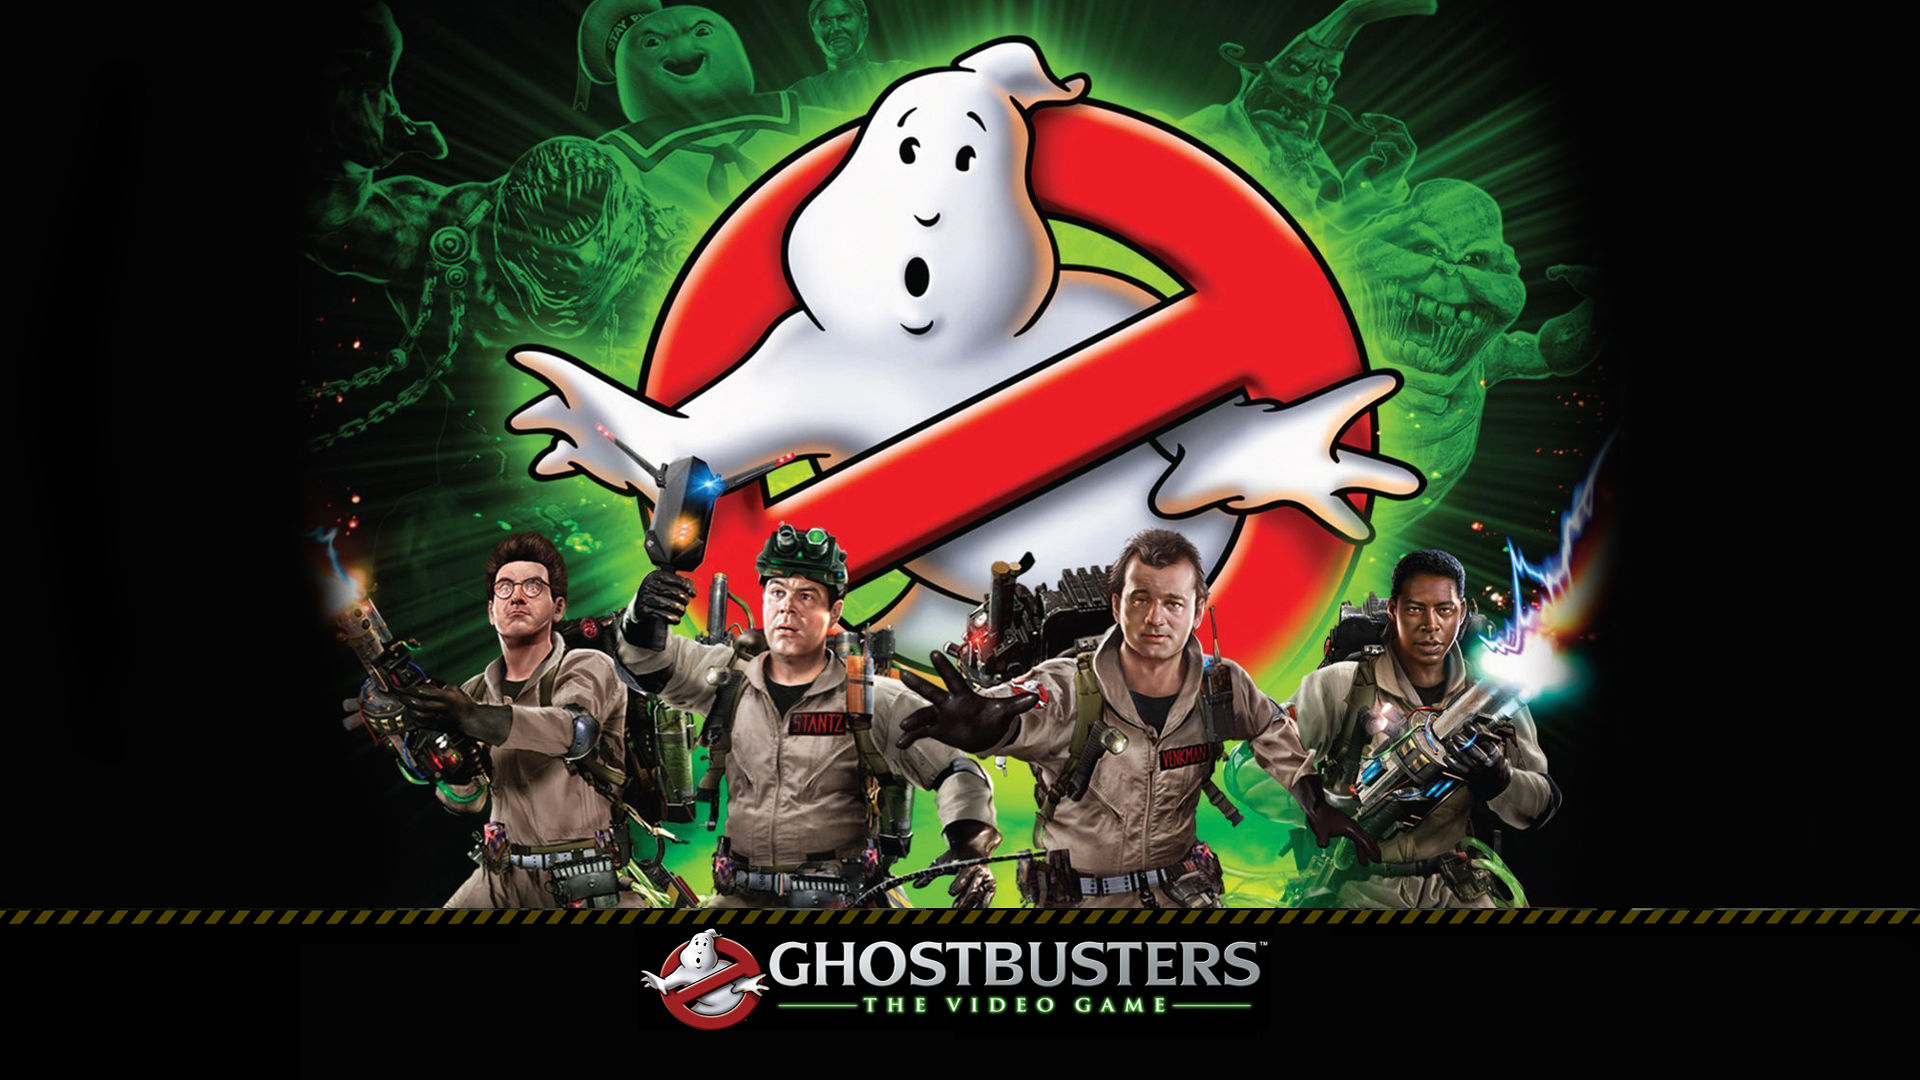 ghostbusters the video game Ghostbusters Struggled with Bad Video Games Before Giving Us a Third Film